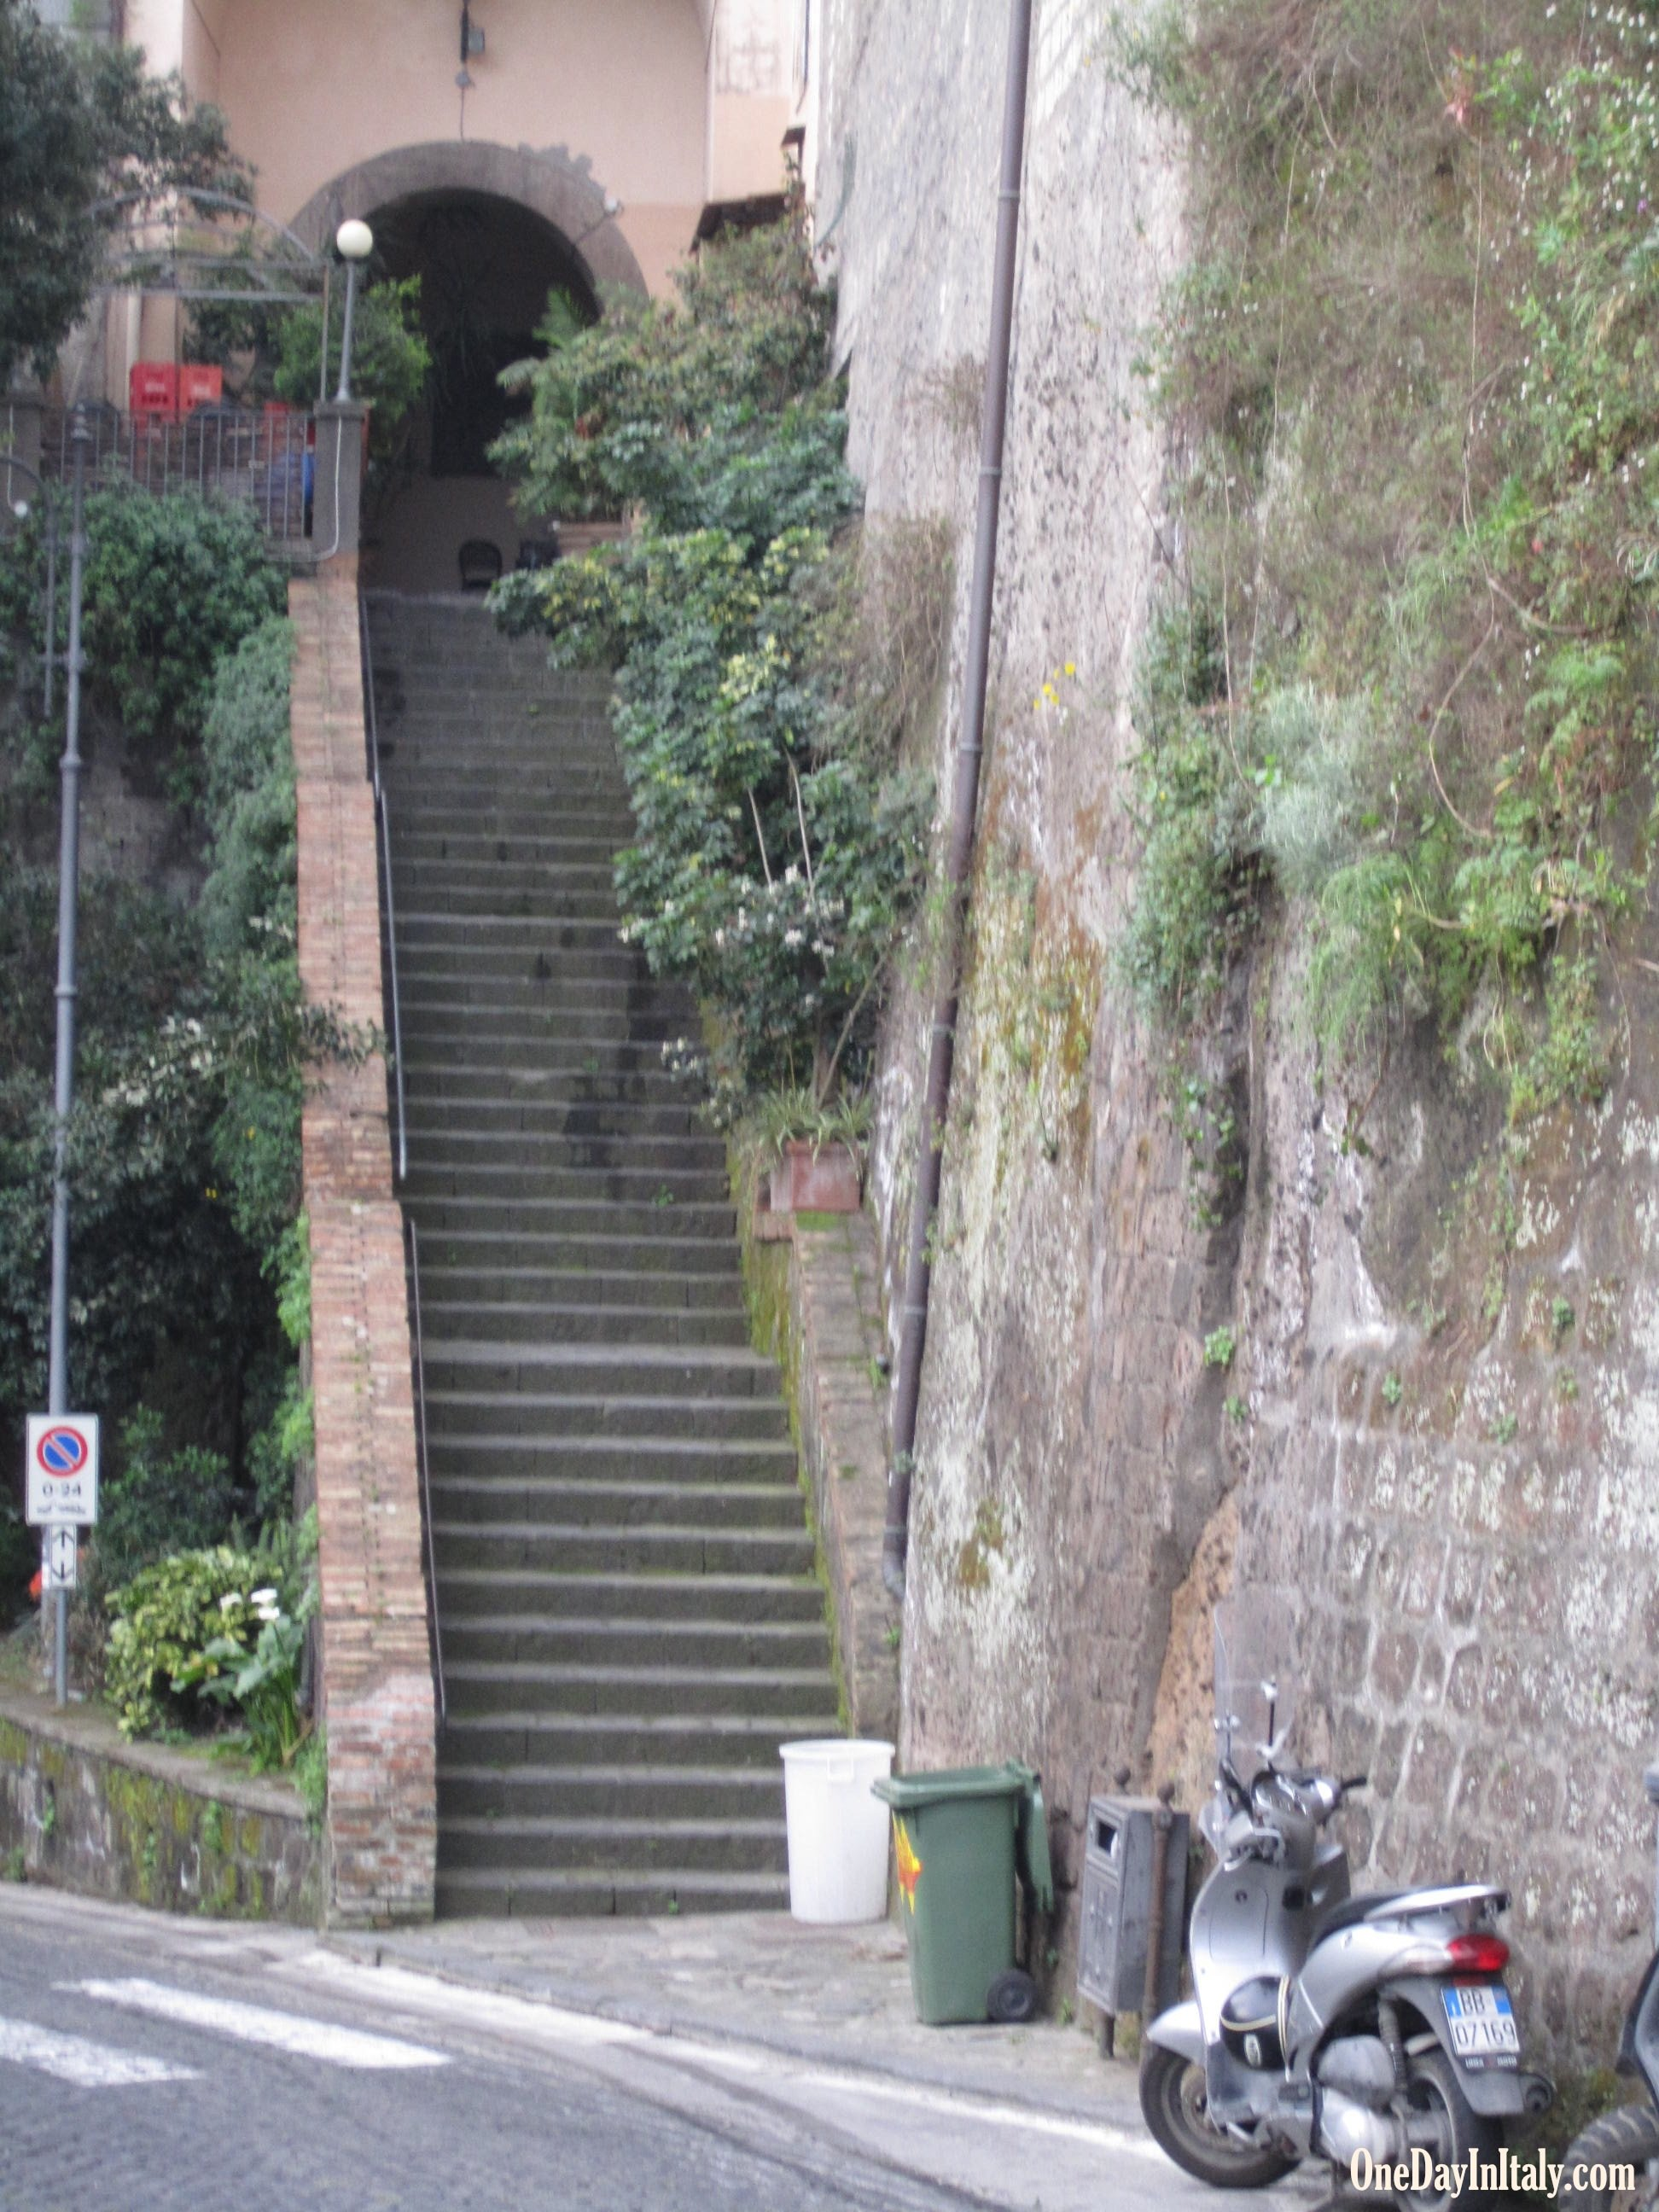 Stairs leading down to the port